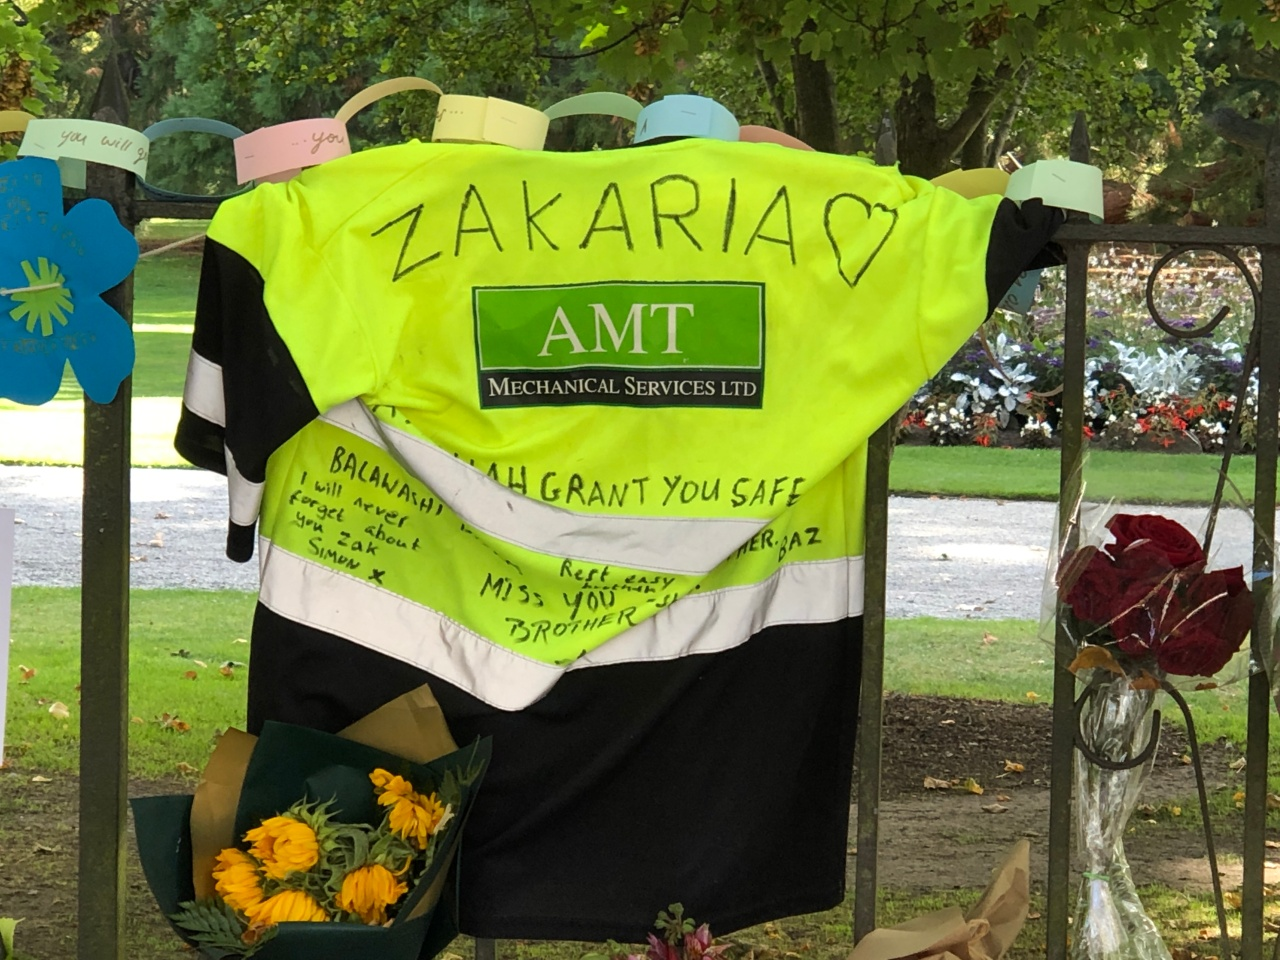 """A fluorescent vest for AMT Mechanical Services with the name """"Zakaria"""" and a heart drawn next to it on the back. Messages from his co-workers are written on the back. The vest hangs on a fence at the Christchurch Botanical Gardens. Zakaria was one of the 51 victims of the Christchurch terrorist attacks on mosques on 15 March 2019"""